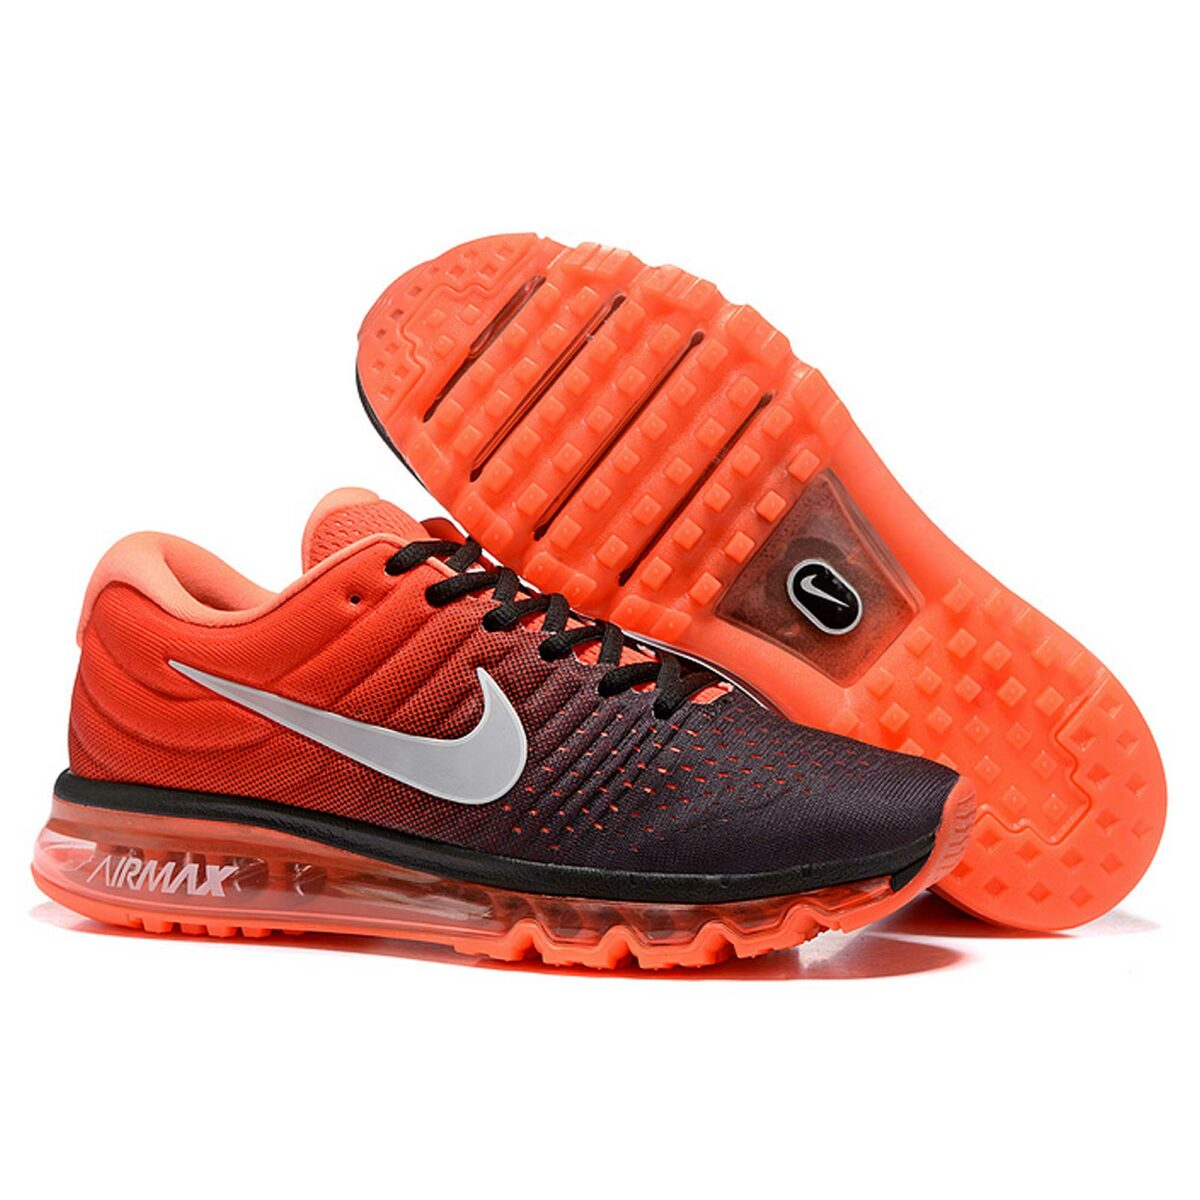 nike air max 2017 black orange 849559-100 купить